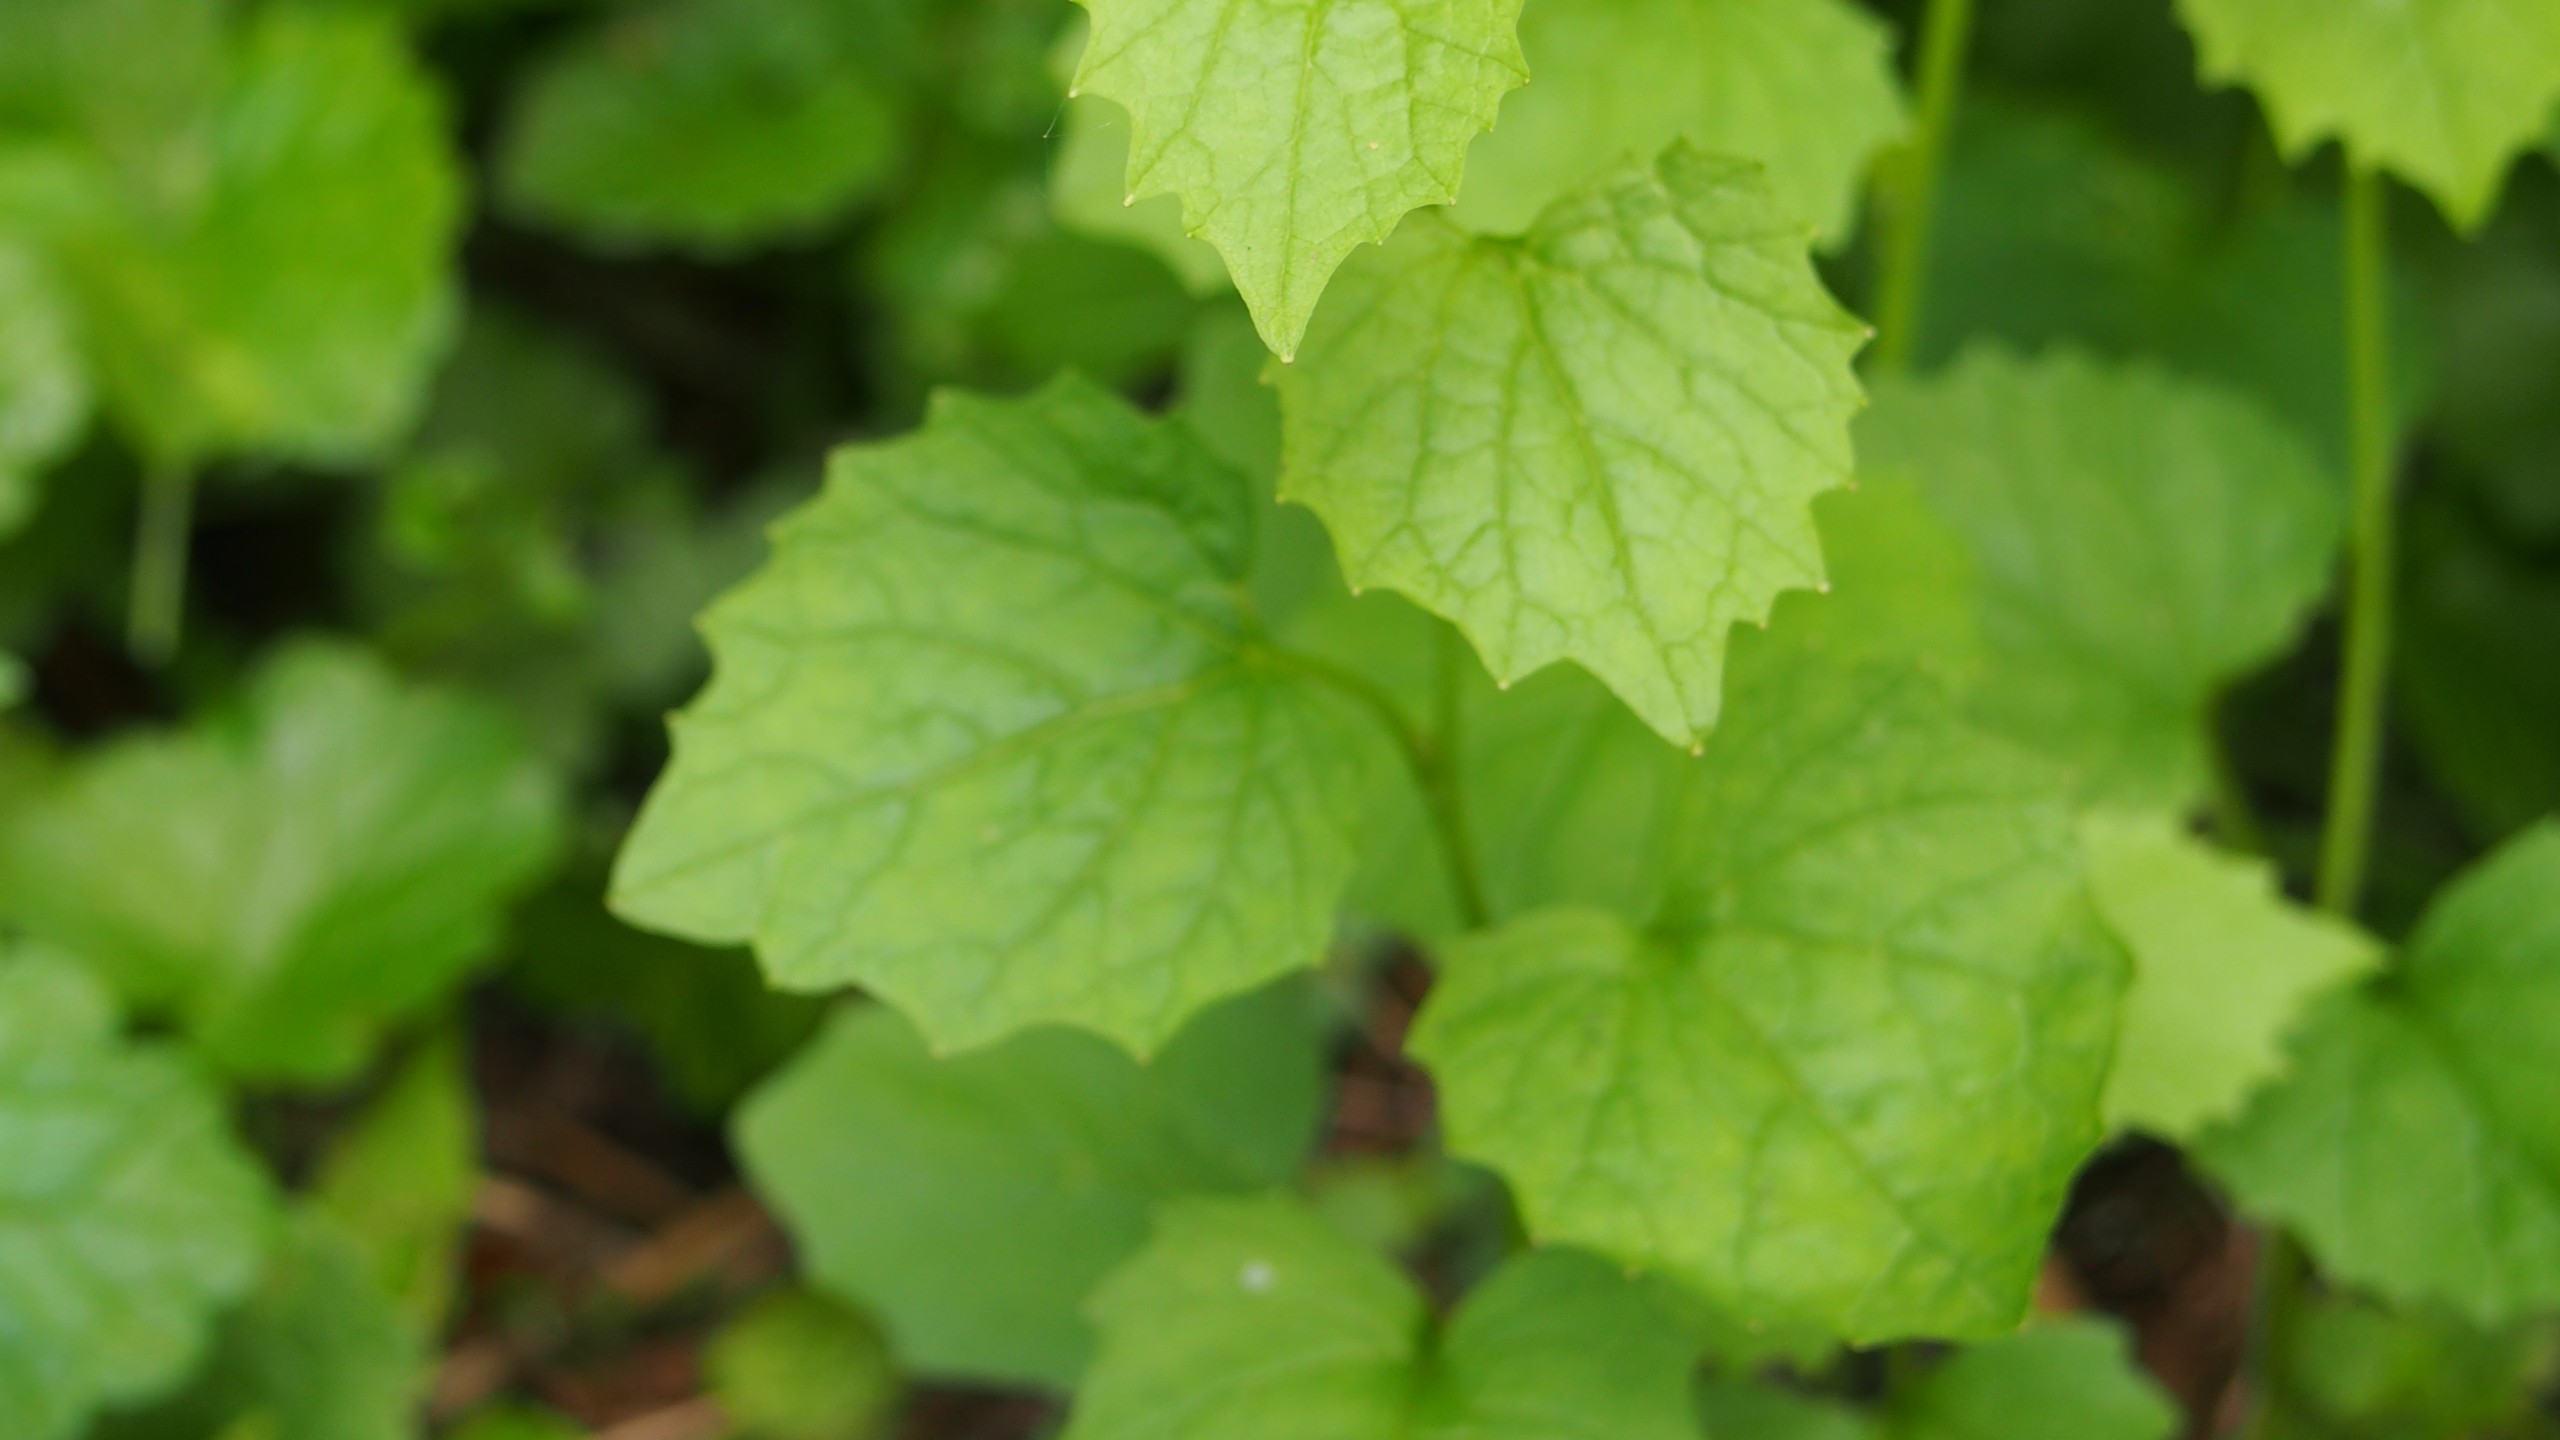 Garlic Mustard (alliaria petiolata) with white flowers